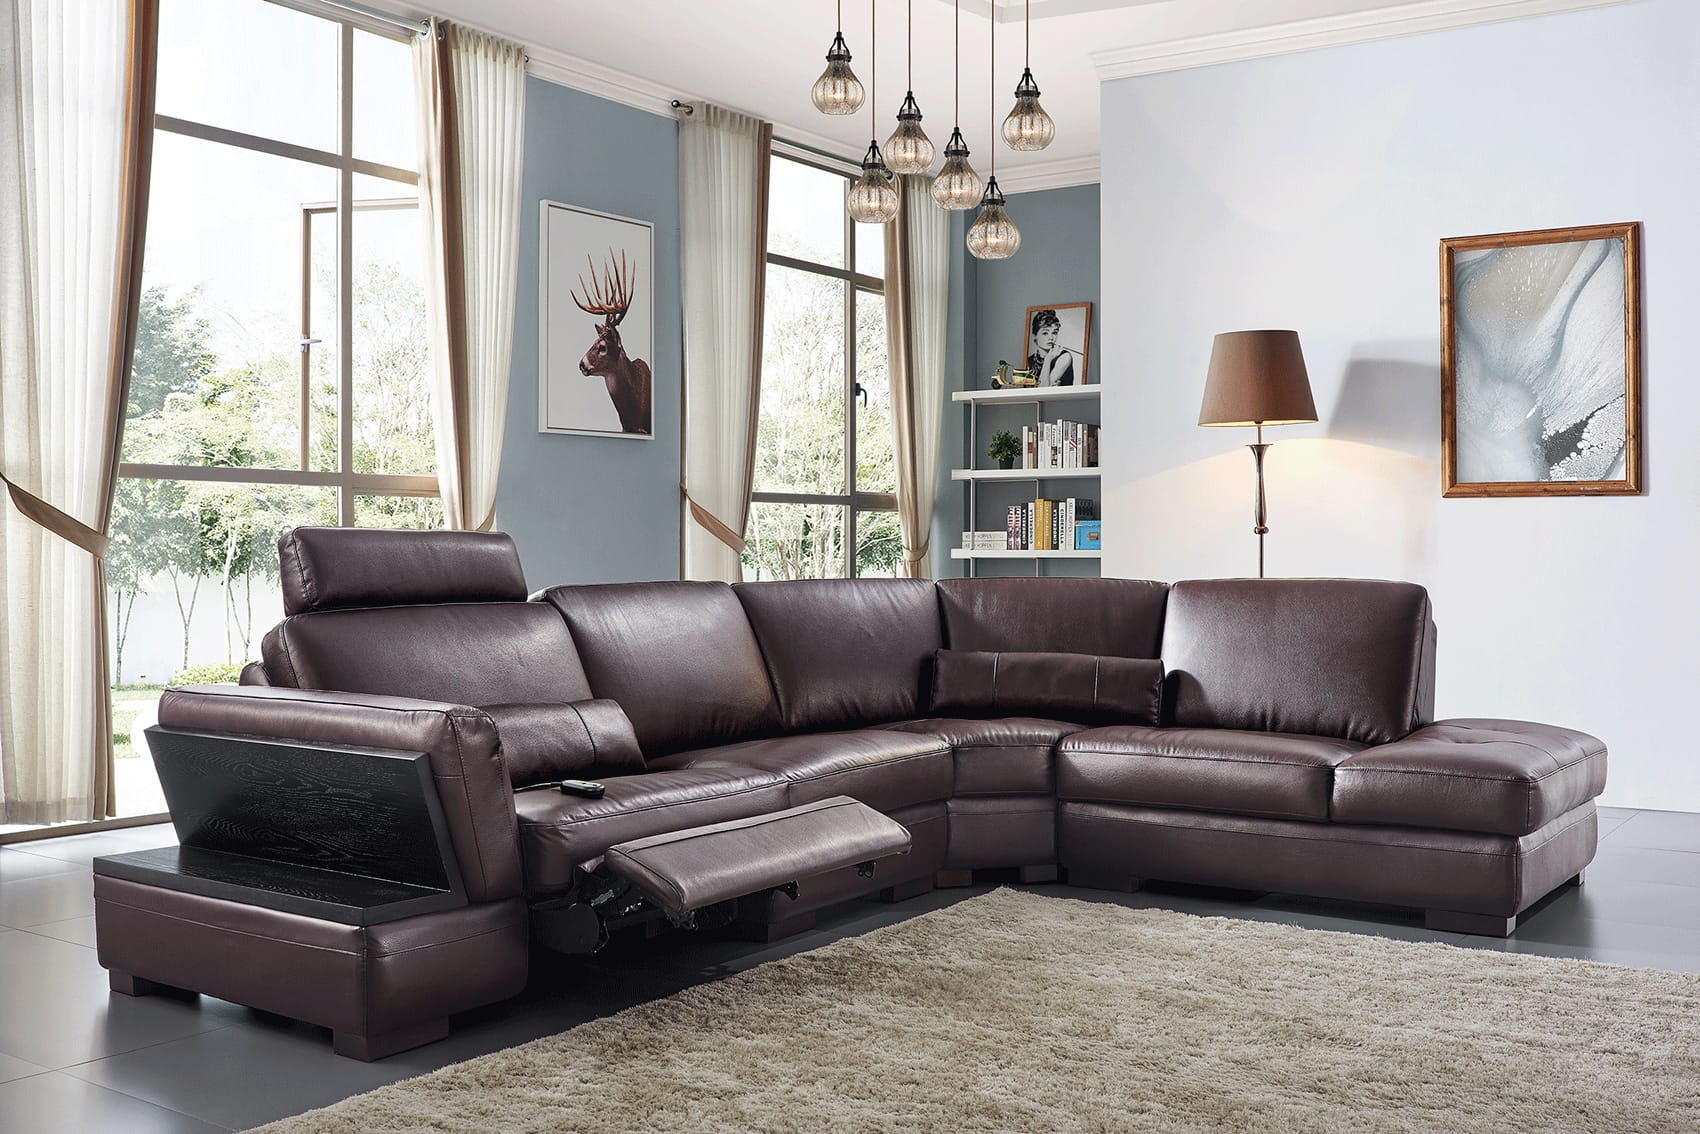 445 dark brown leather sectional w electric recliner by esf